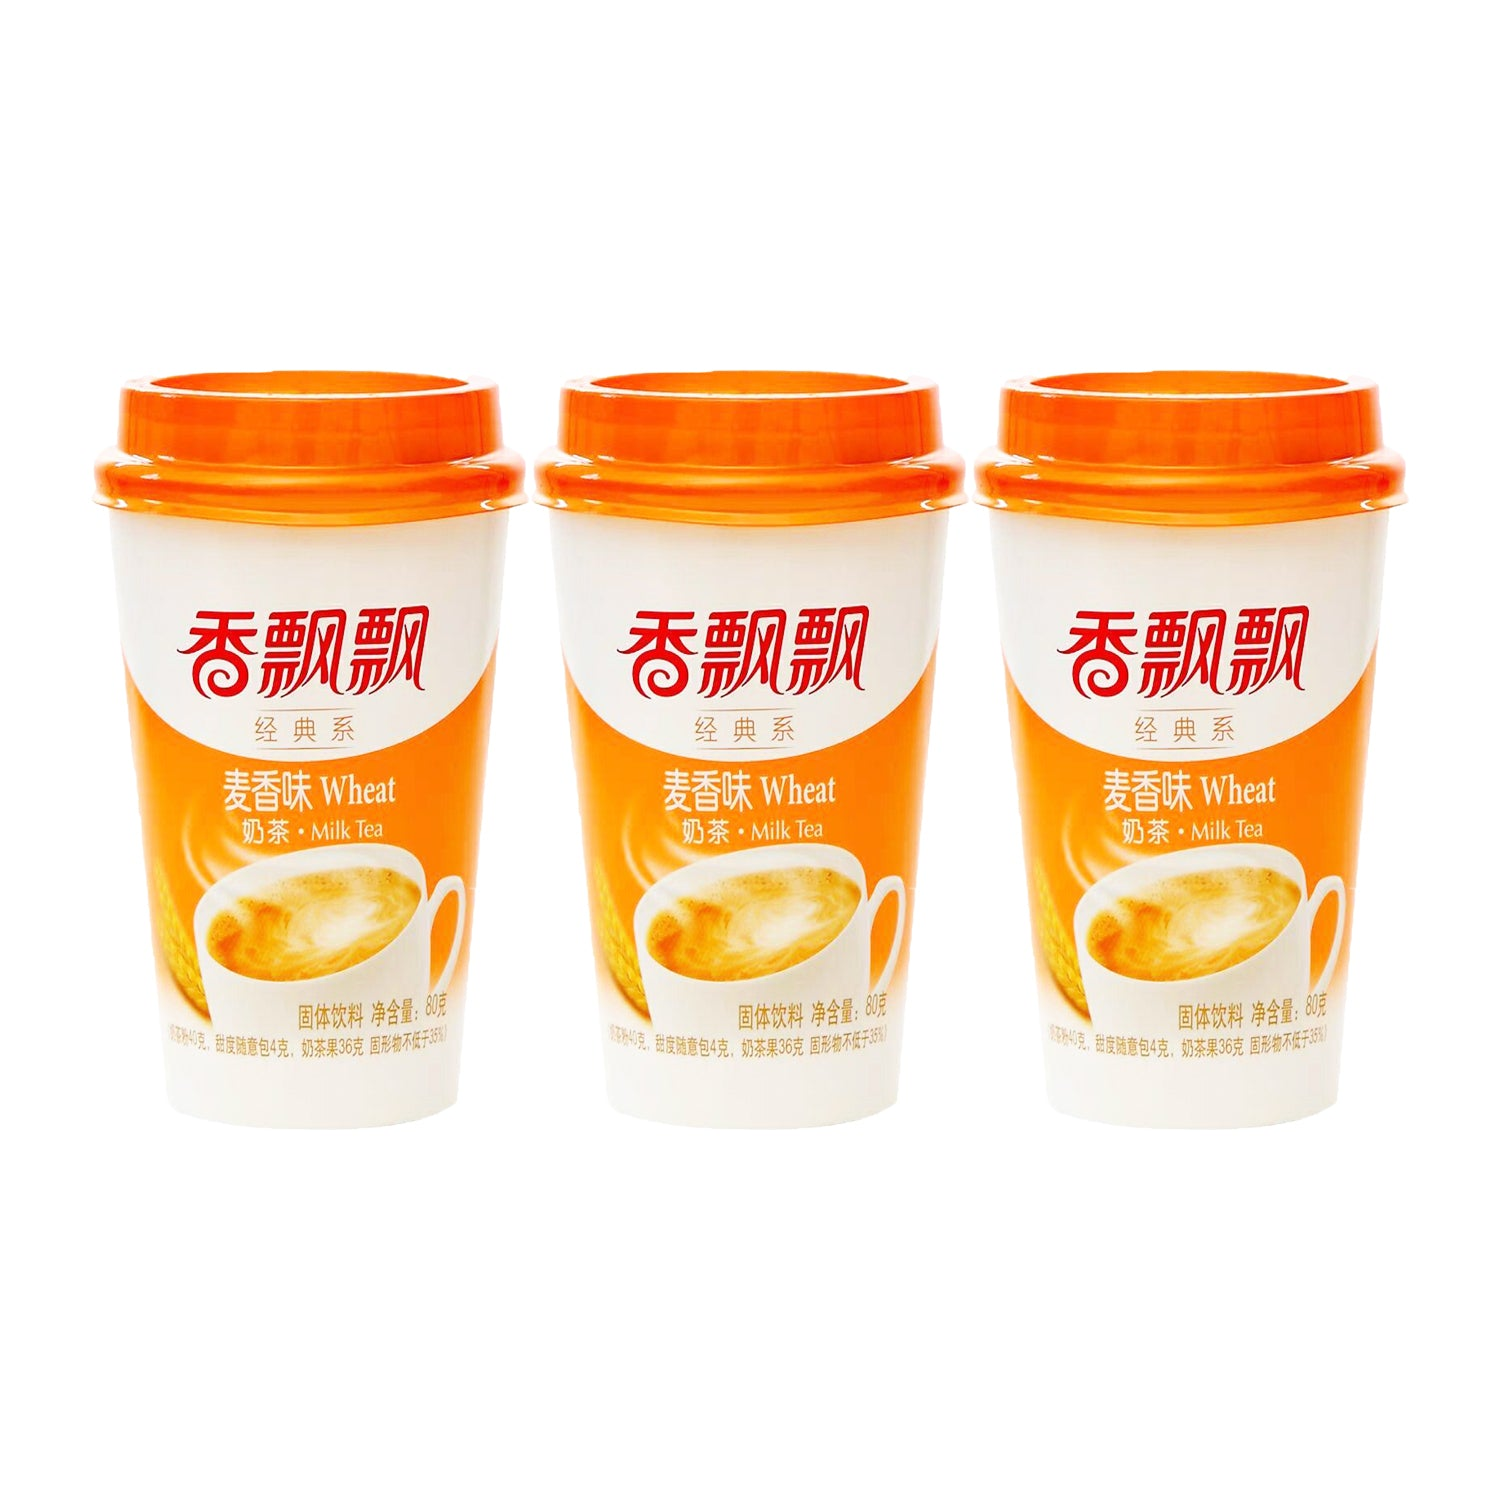 XiangPiaoPiao Milk Tea Wheat Flavor - 3 For $2.99